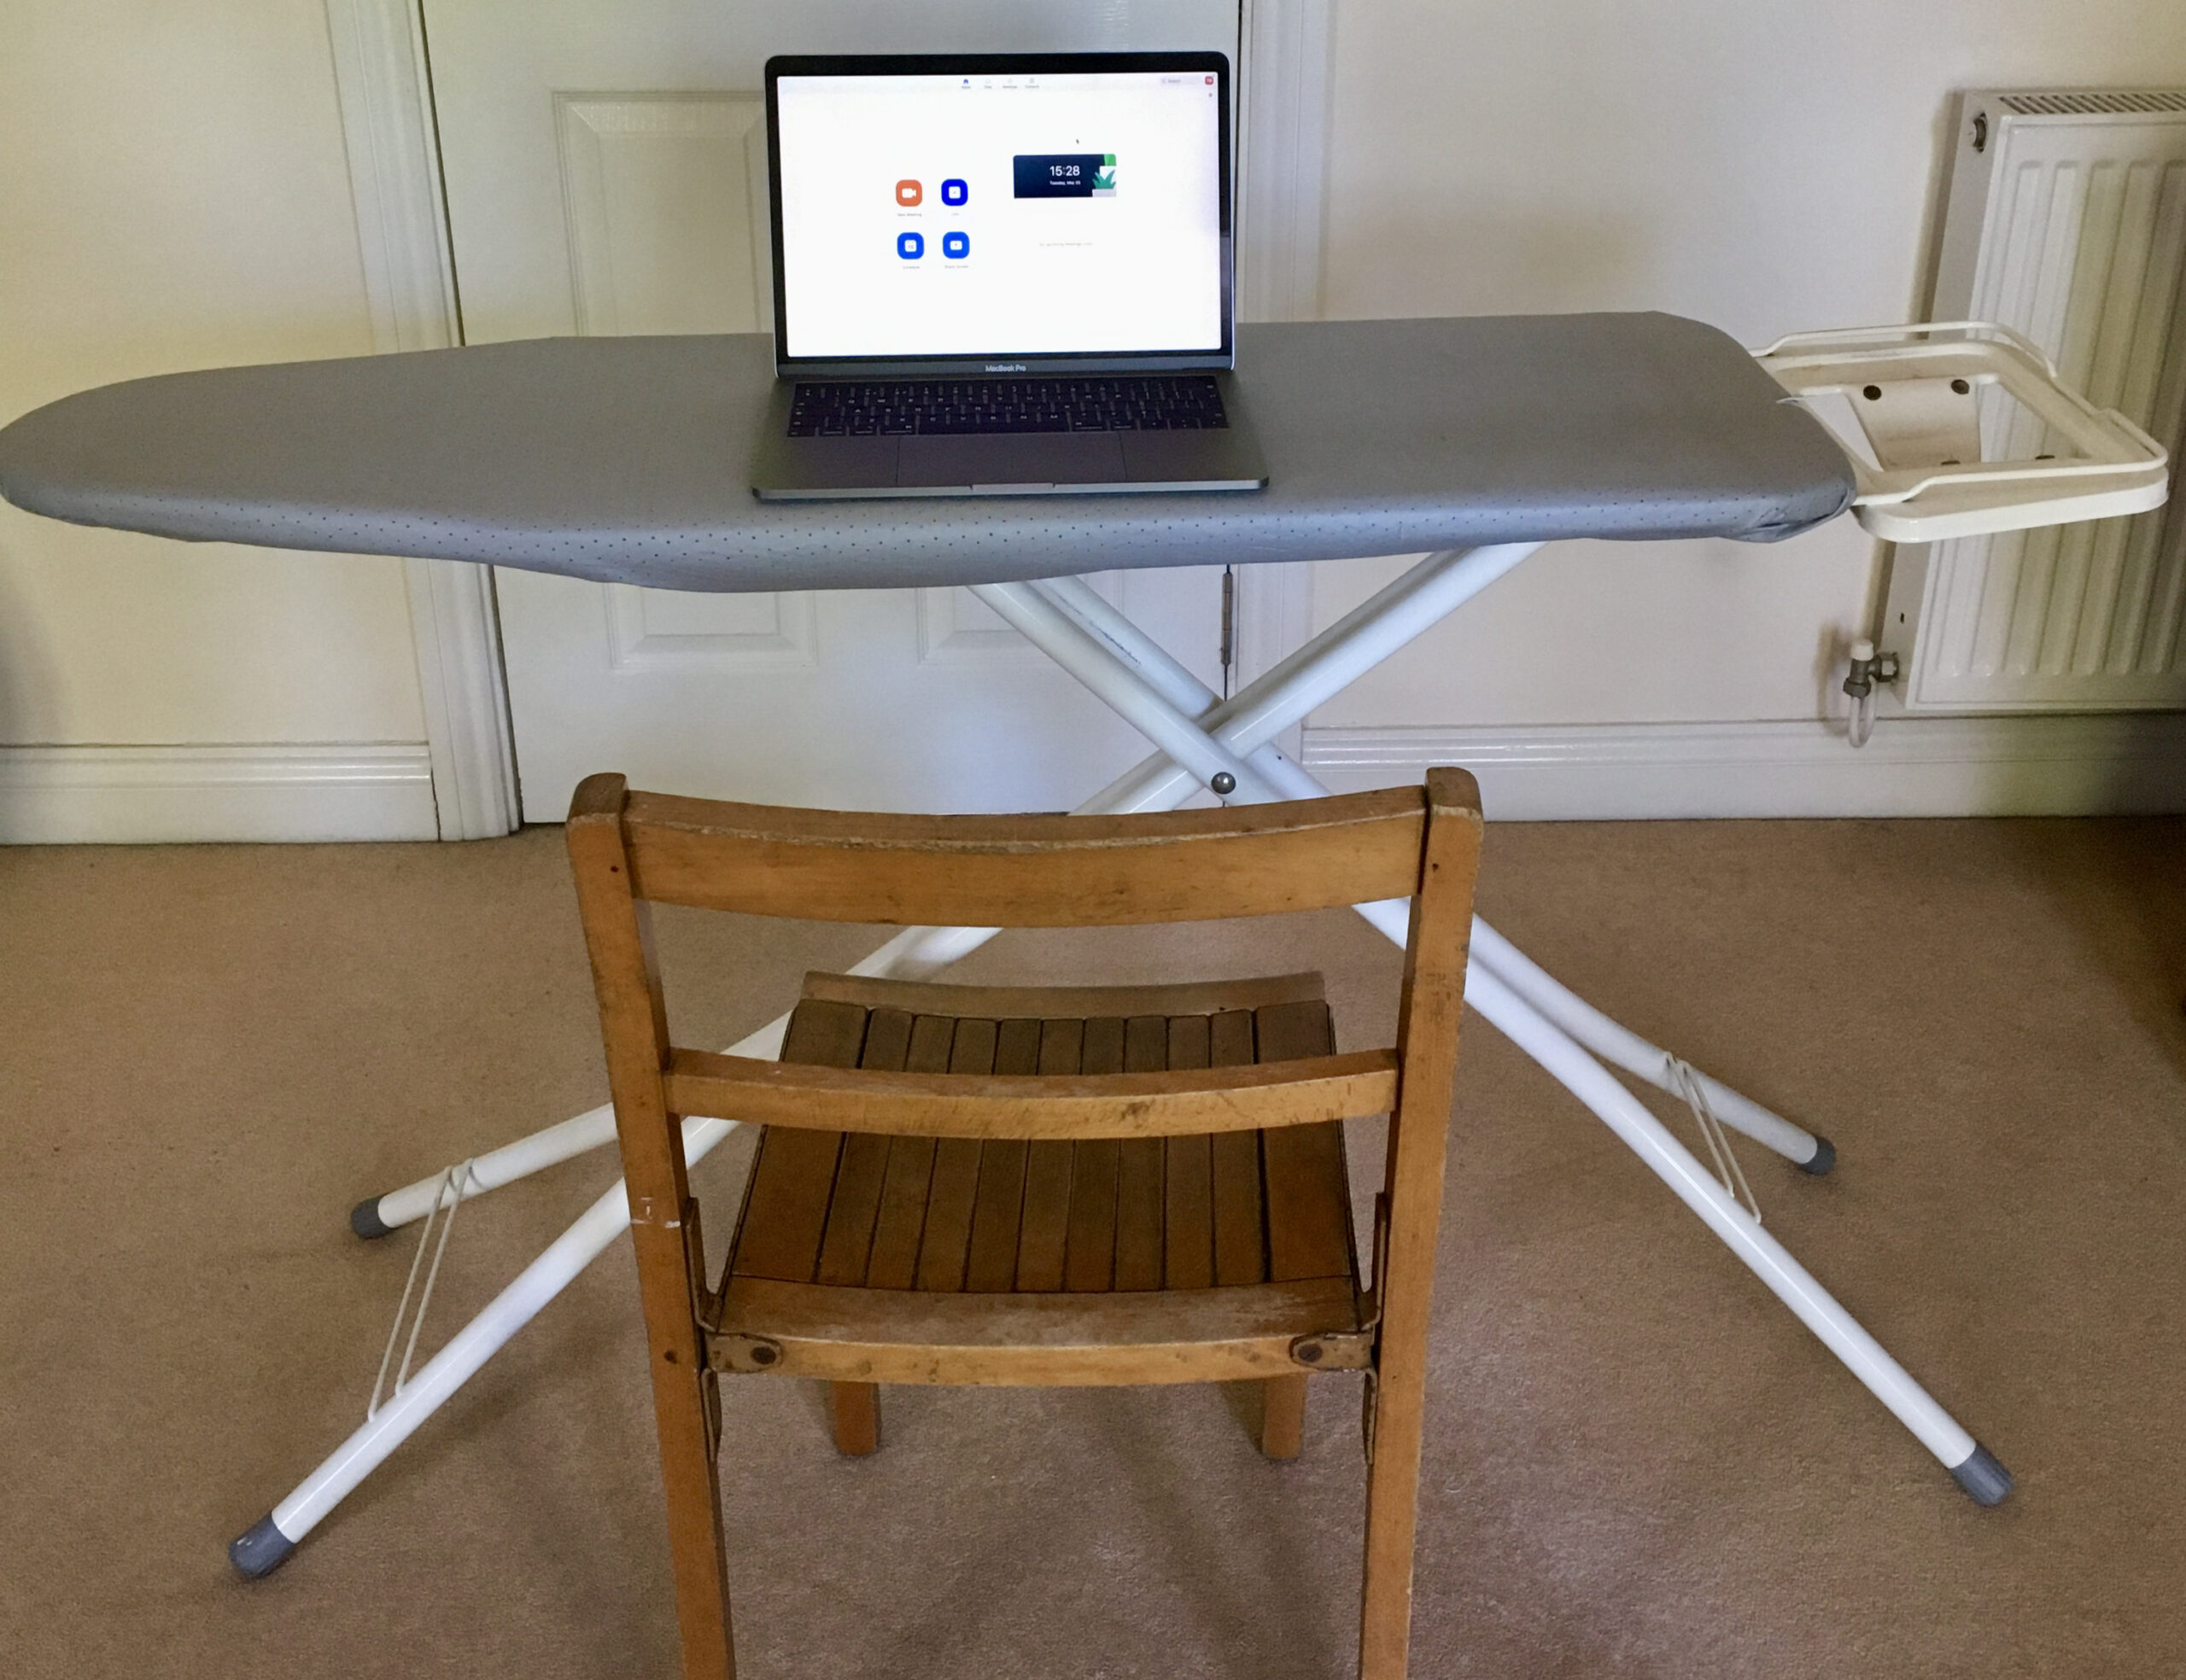 Working from home: a laptop opened on an ironing board with a chair in front. A sit stand desk!